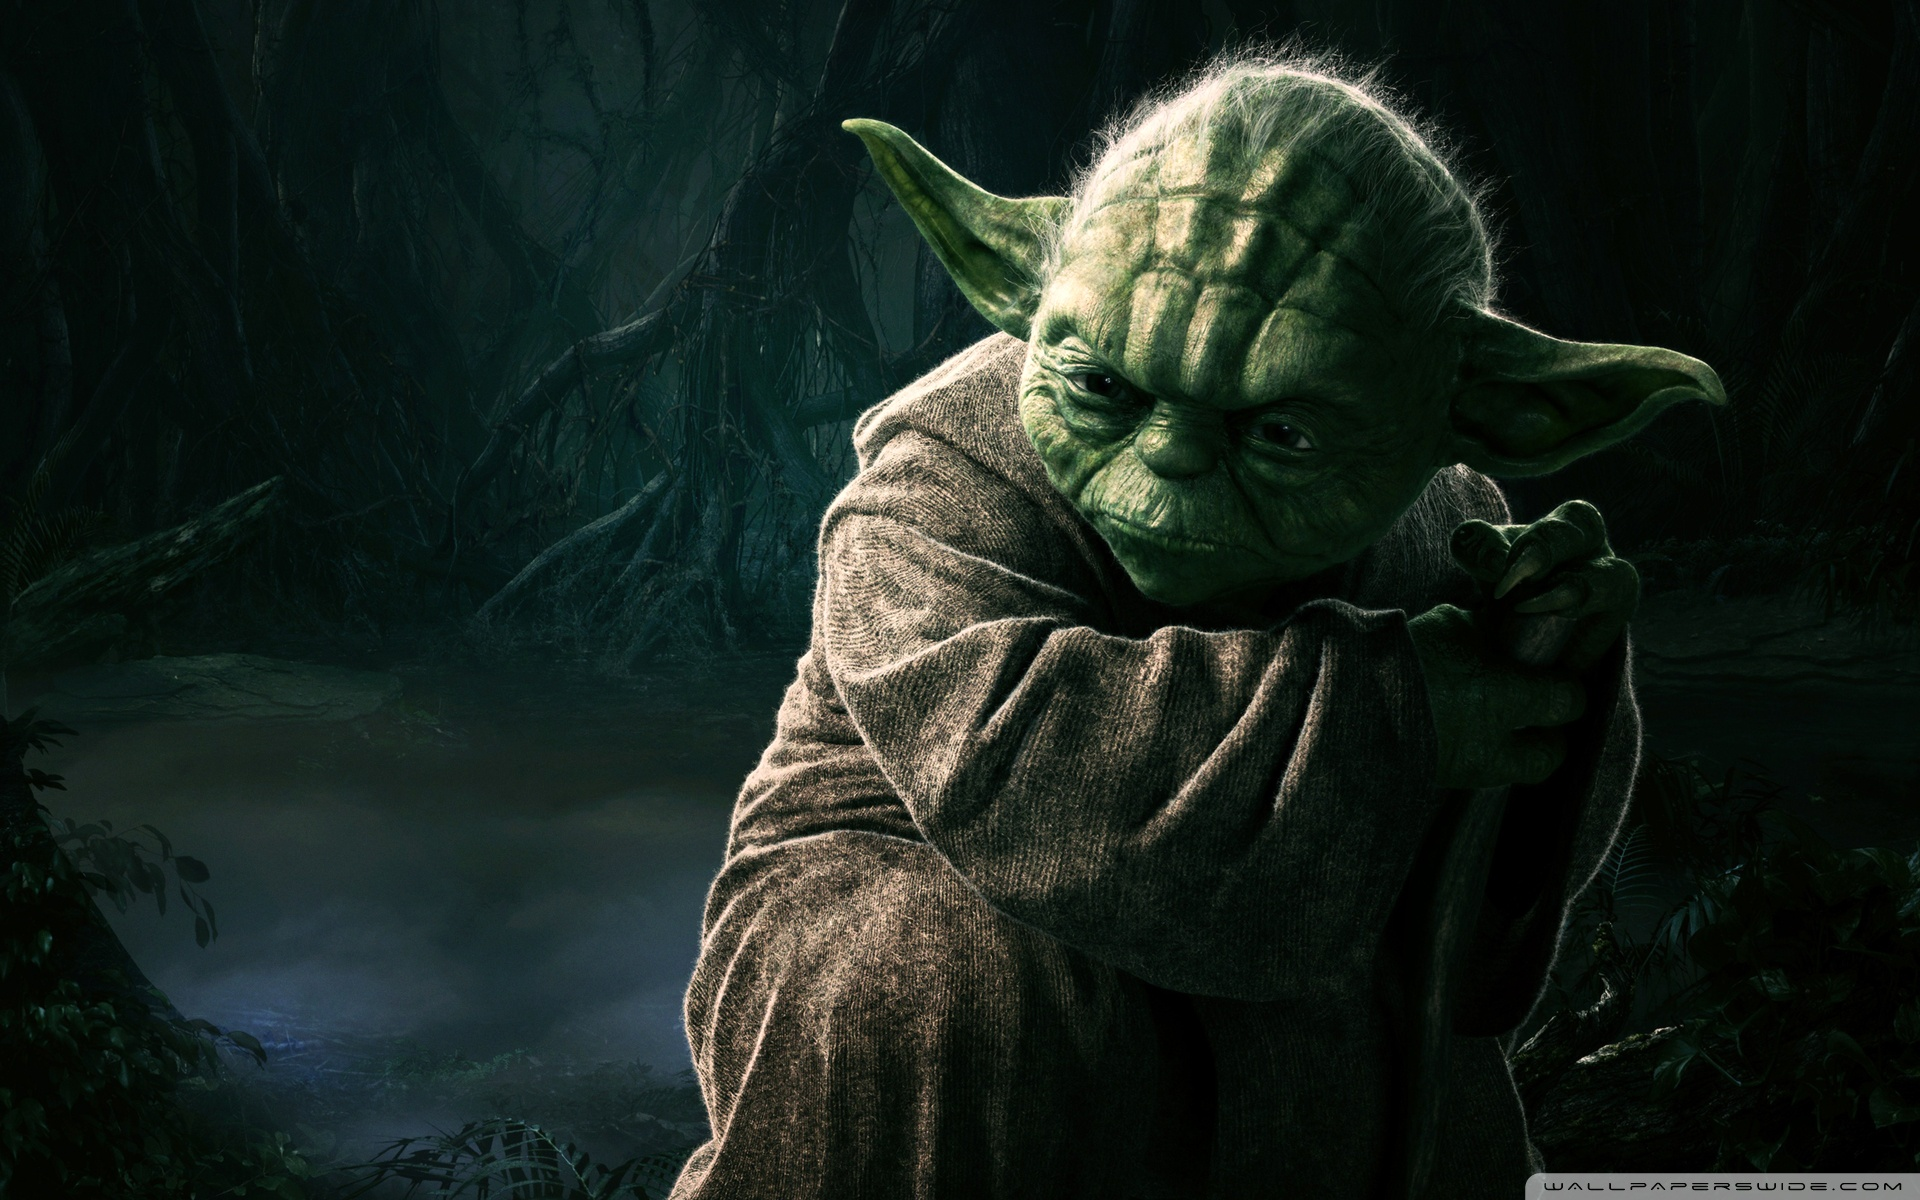 Cool Star Wars Yoda Wallpapers The Art Mad Wallpapers 1920x1200